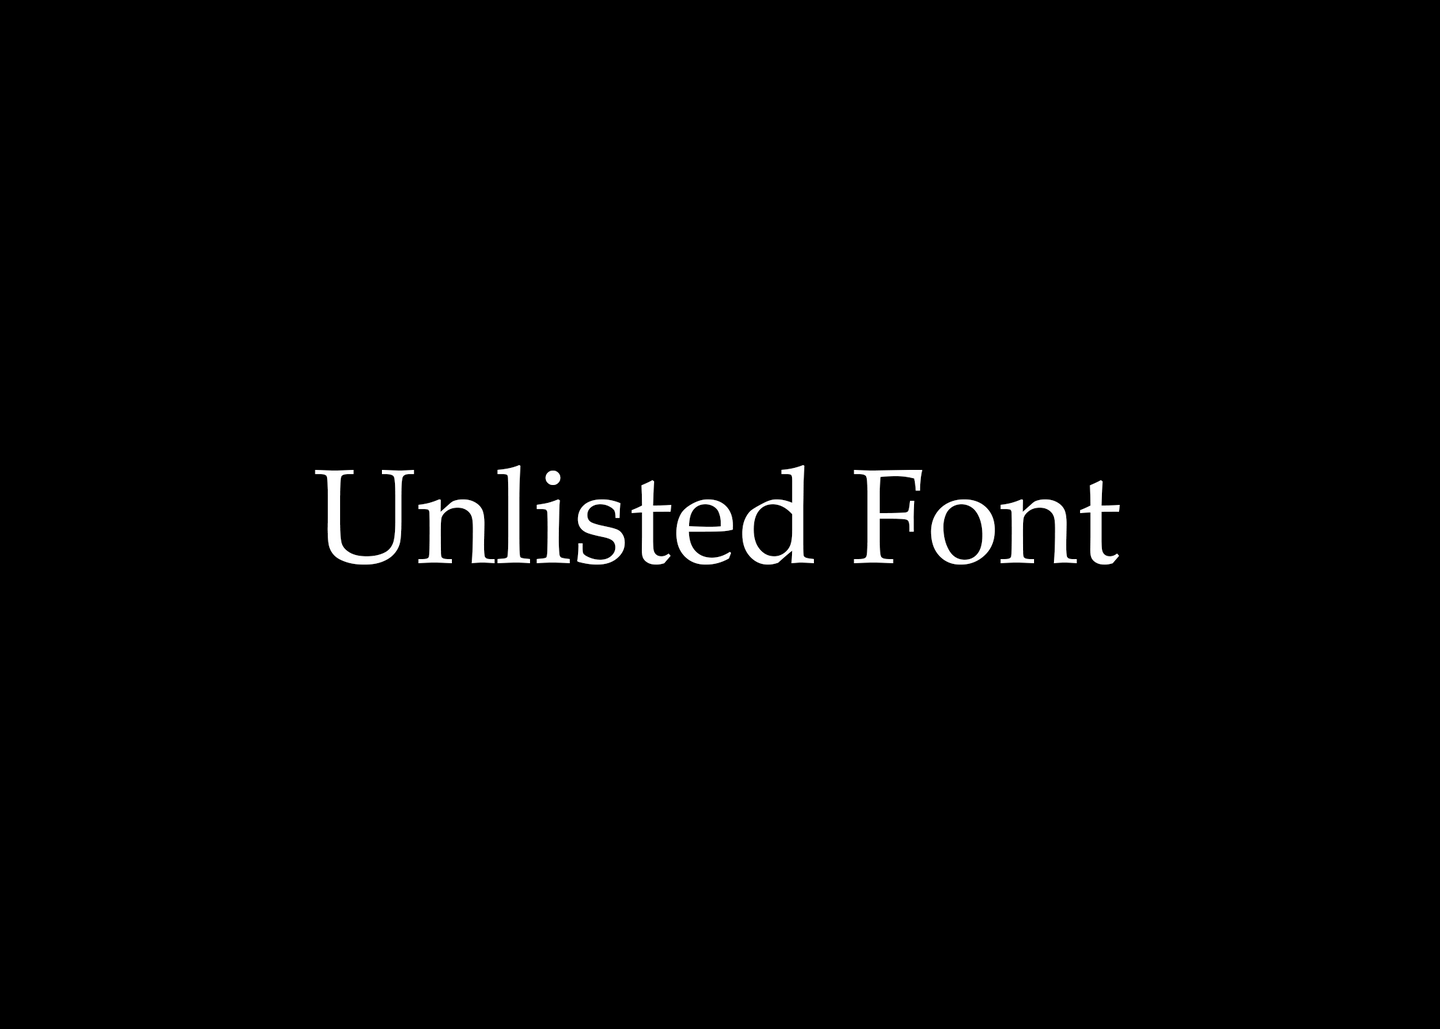 Other font (unlisted)